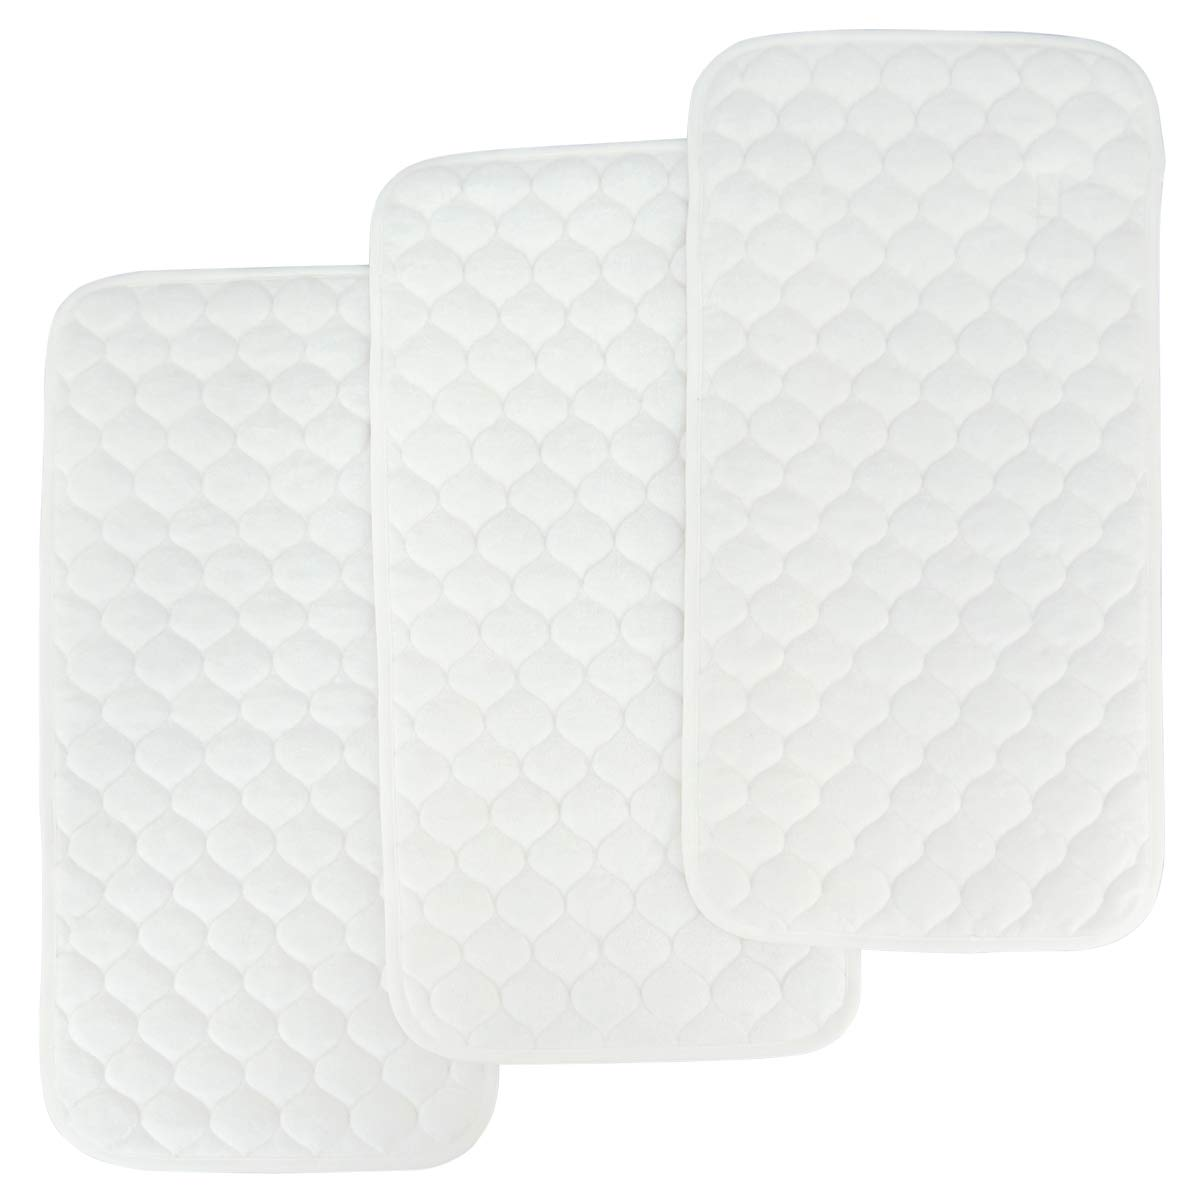 Bamboo Quilted Thicker Longer Waterproof Changing Pad Liners for Babies 3 Count (White Gourd Pattern) by BlueSnail by BlueSnail